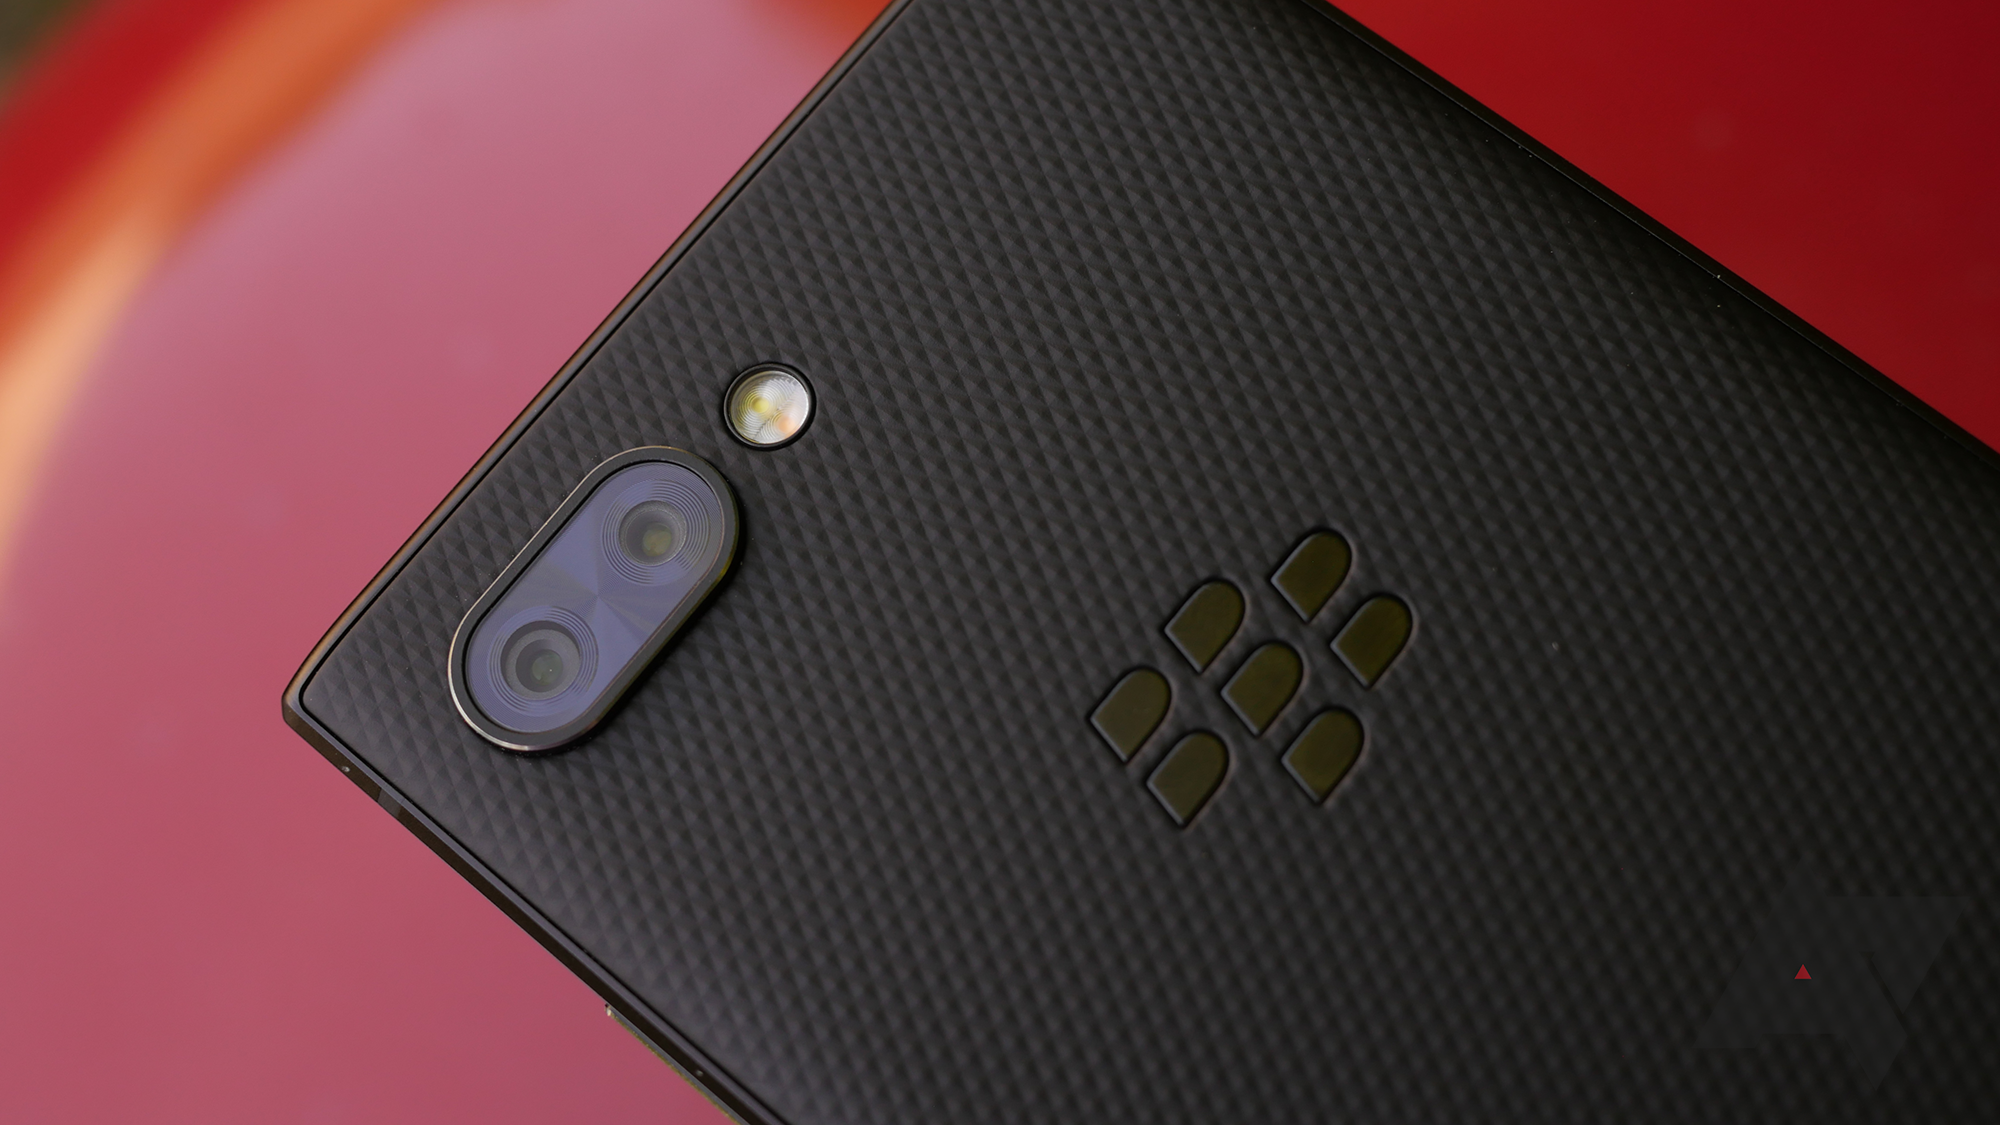 BlackBerry's BBM consumer service is ending next month